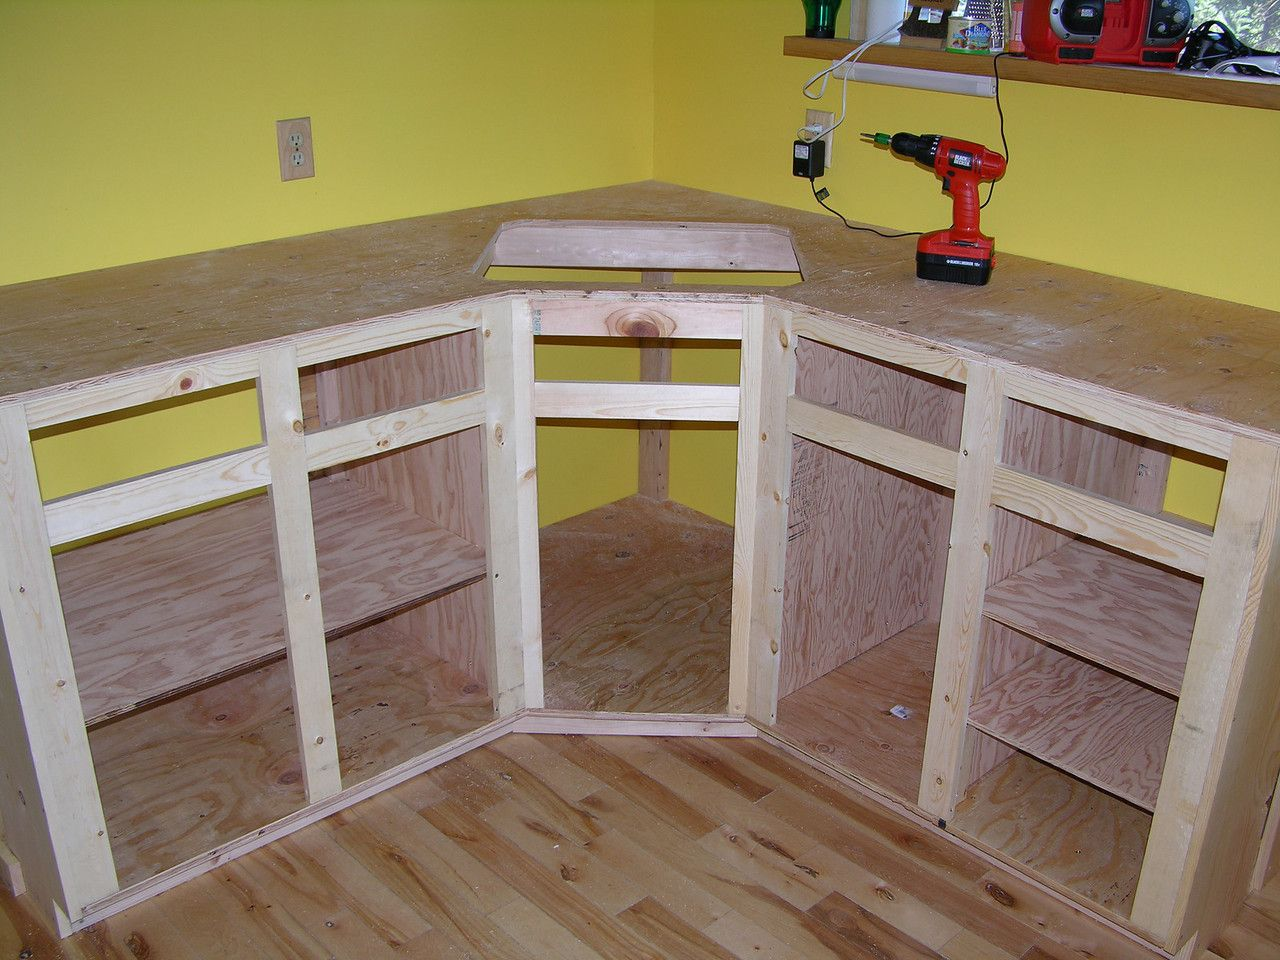 55 How To Make A Cabinet Kitchen Cabinets Storage Ideas Check More At Http Building Kitchen Cabinets Corner Sink Kitchen Kitchen Cabinet Organization Layout